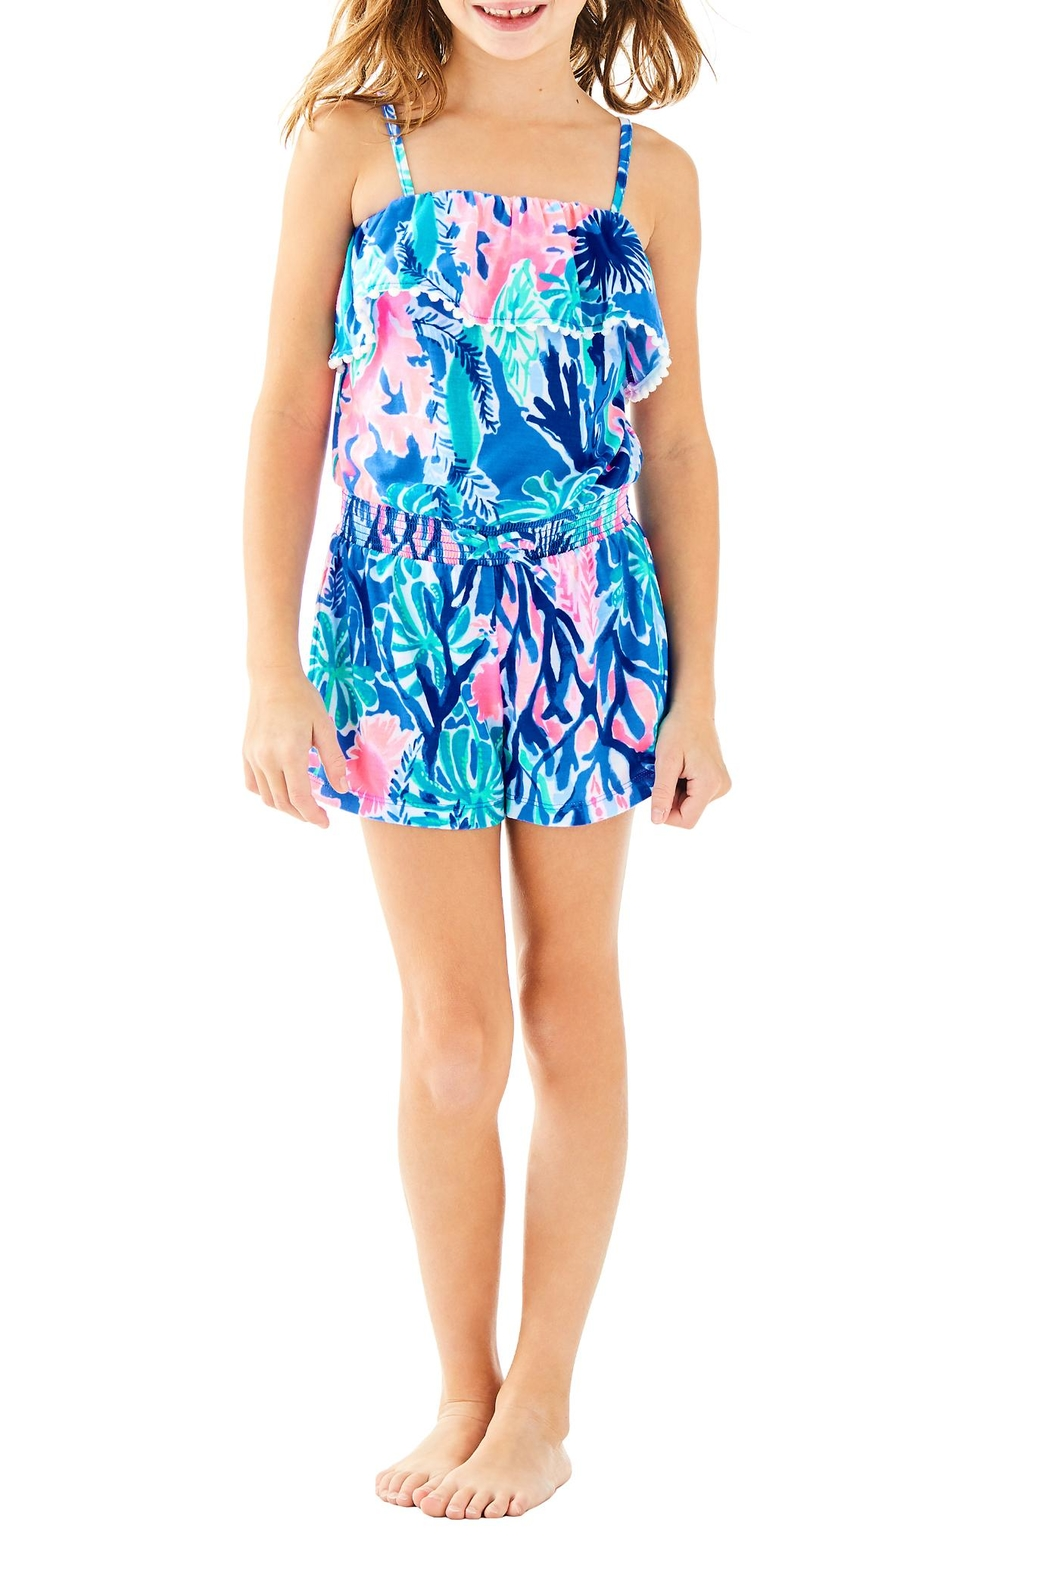 Lilly Pulitzer Girls Leonie Romper - Main Image